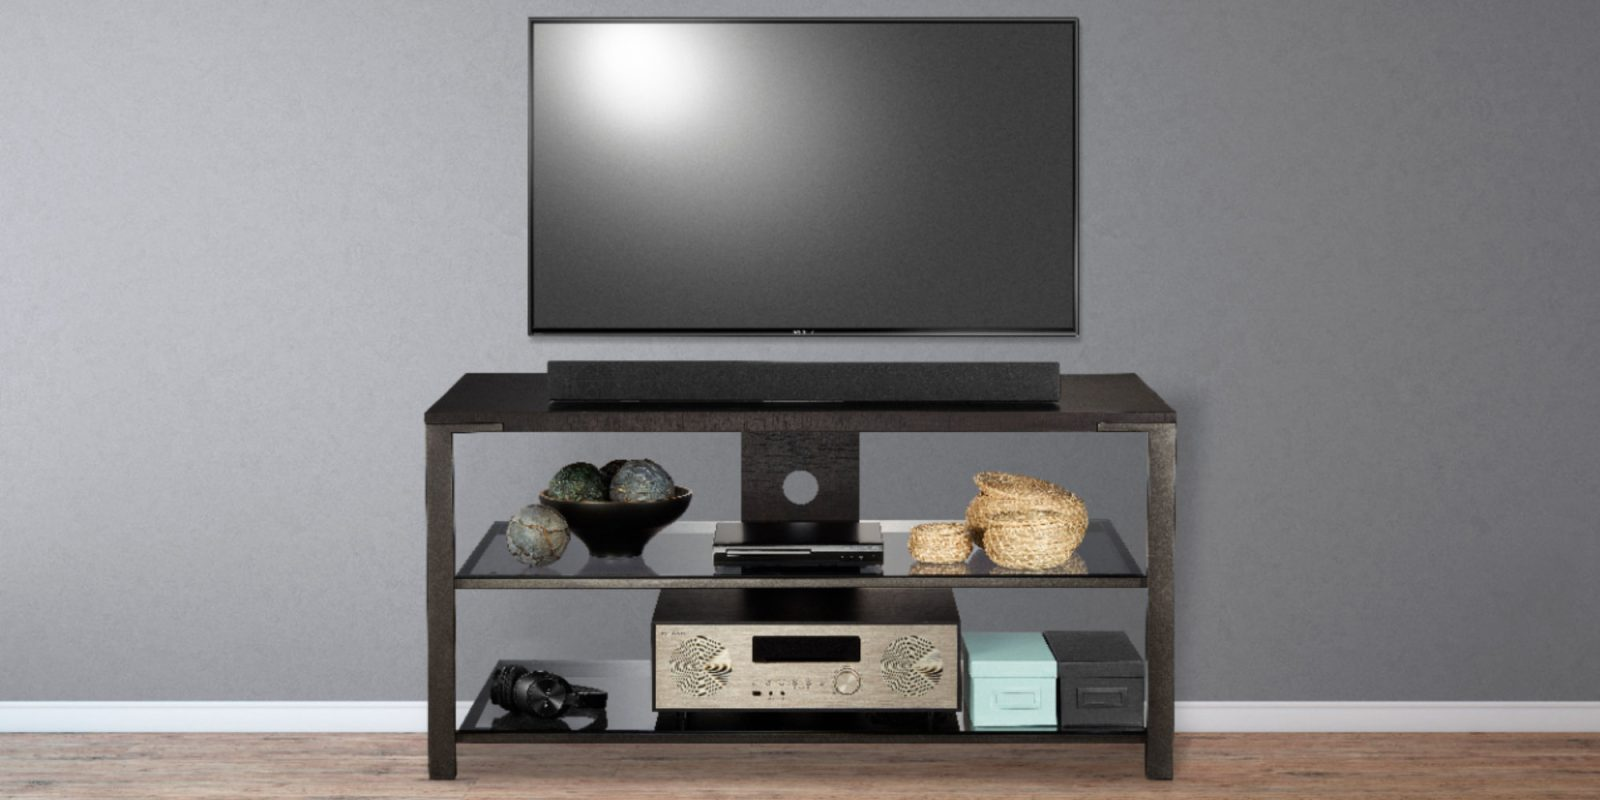 Clean up the living room with Insignia's $59 TV Stand (Reg. $100)